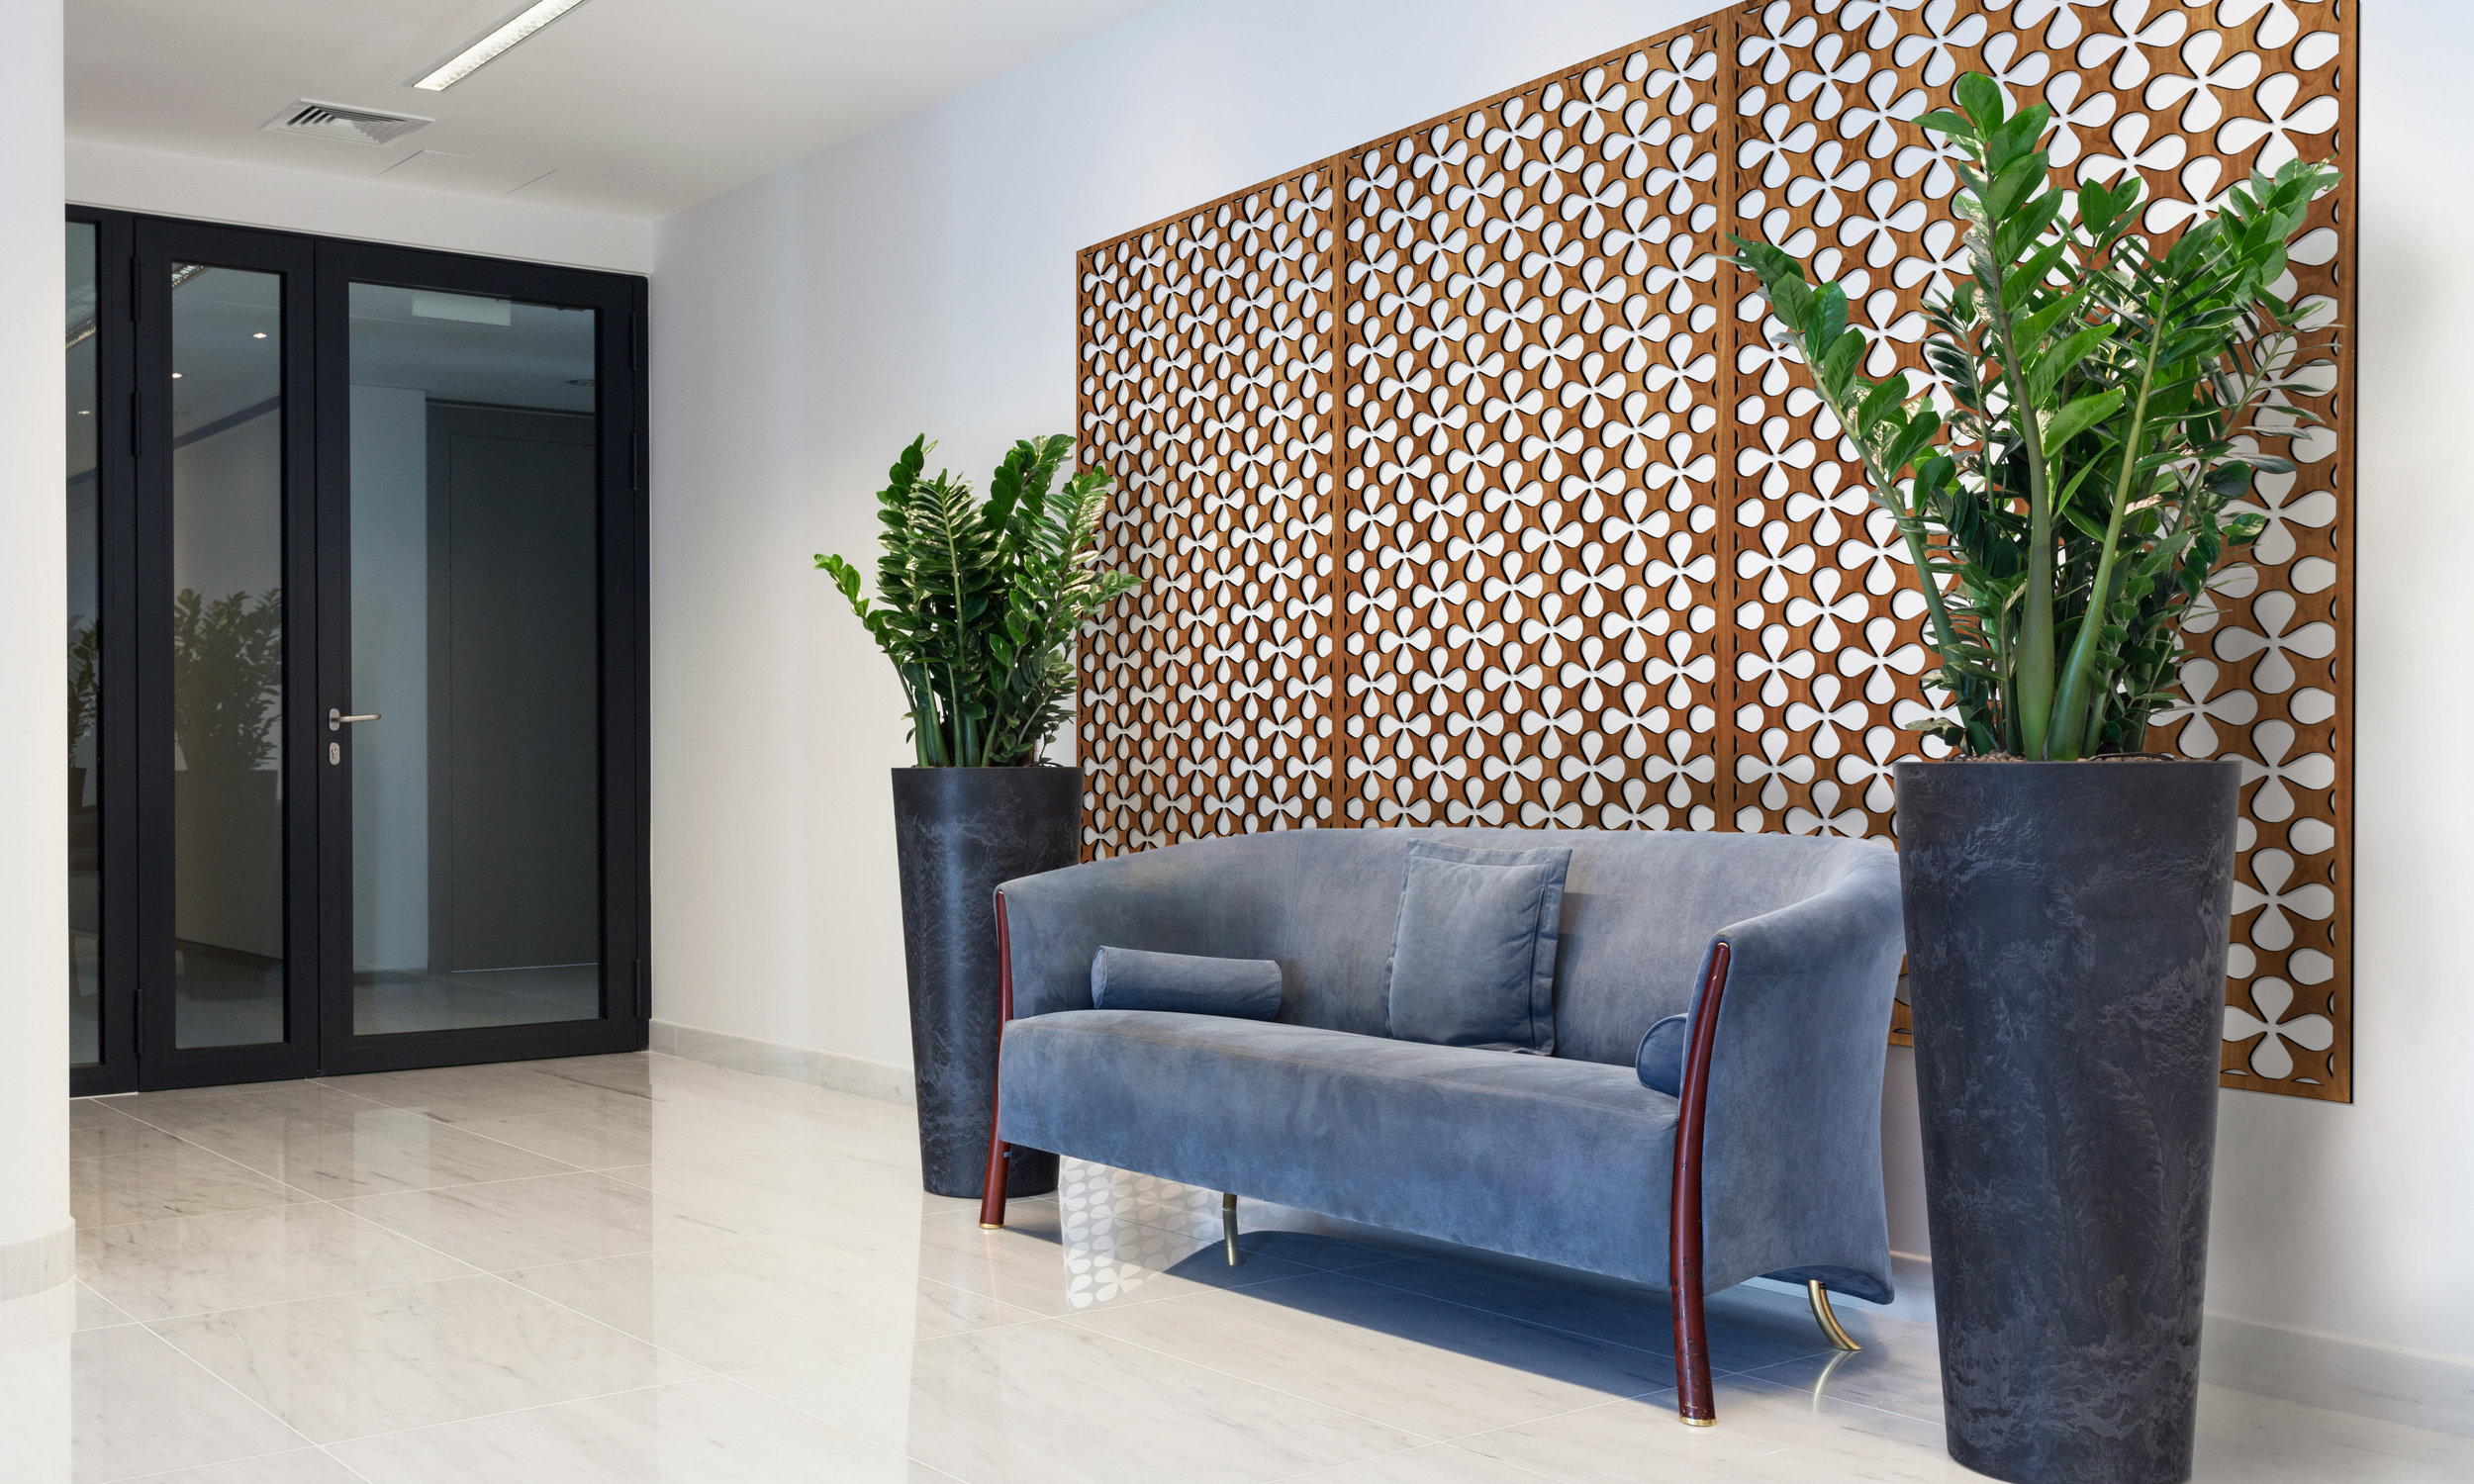 Installation Rendering A   Atomic decorative office wall panel - shown in Cherry